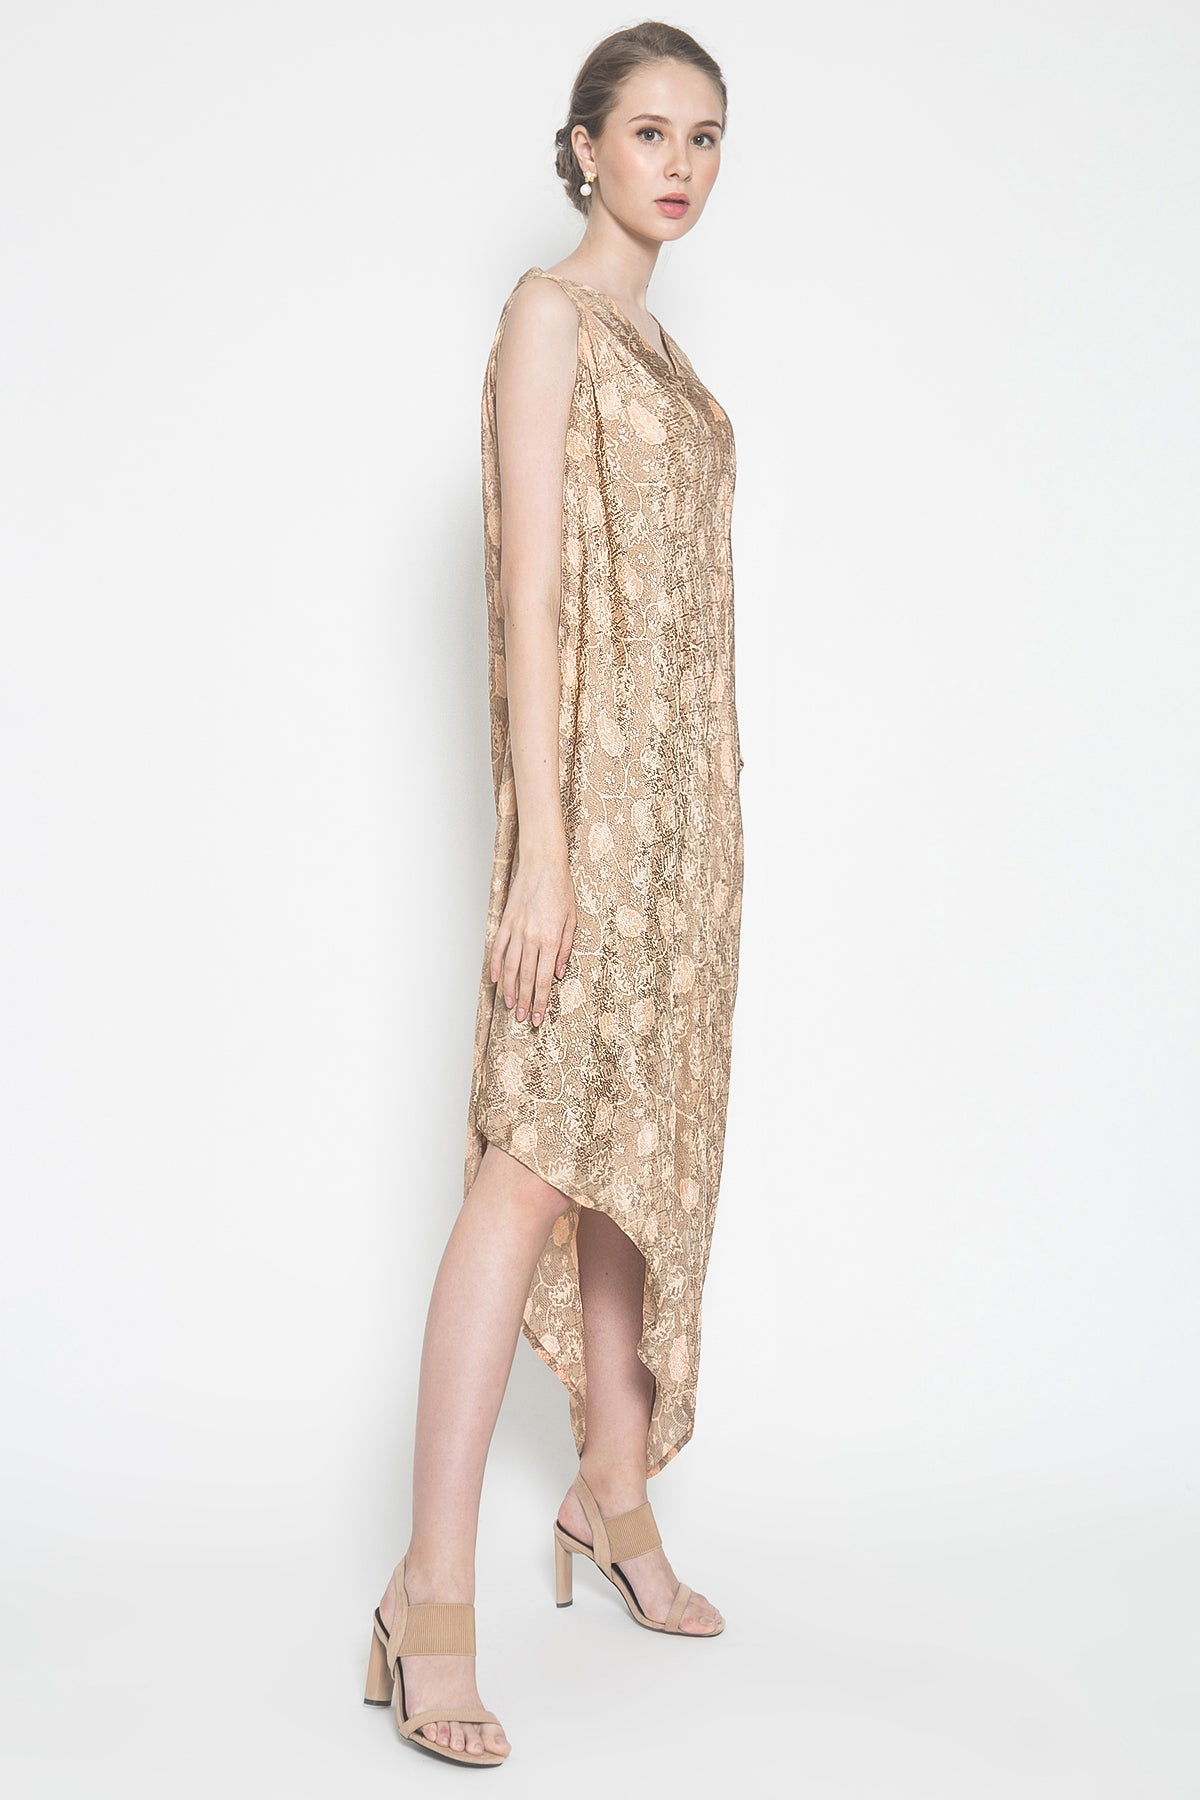 Kayen Symetry Sleeveless Dress in Bronze